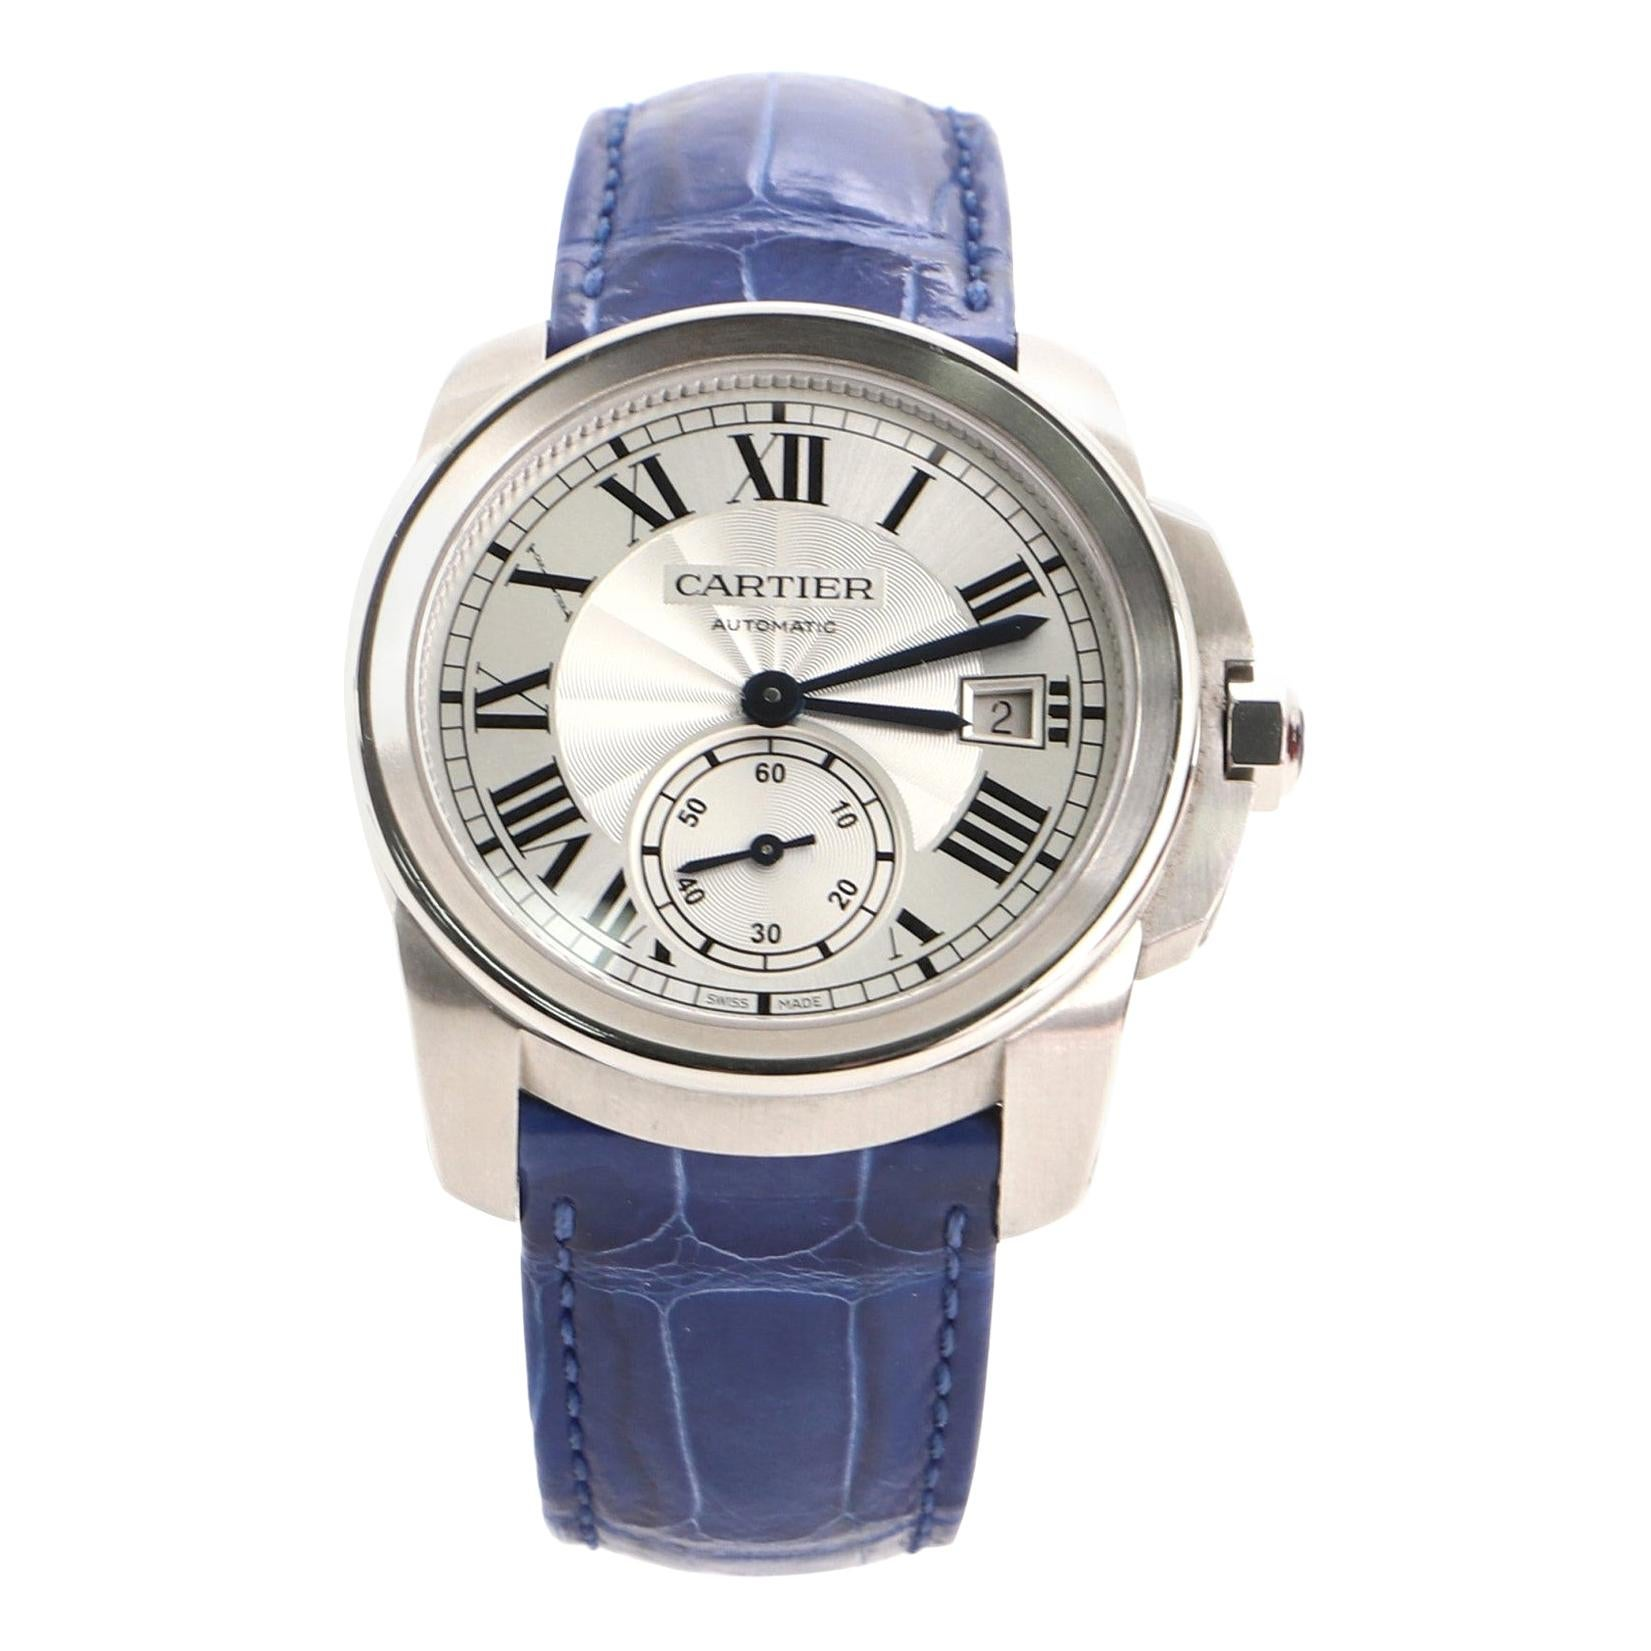 Cartier Calibre de Cartier Automatic Watch Stainless Steel and Alligator